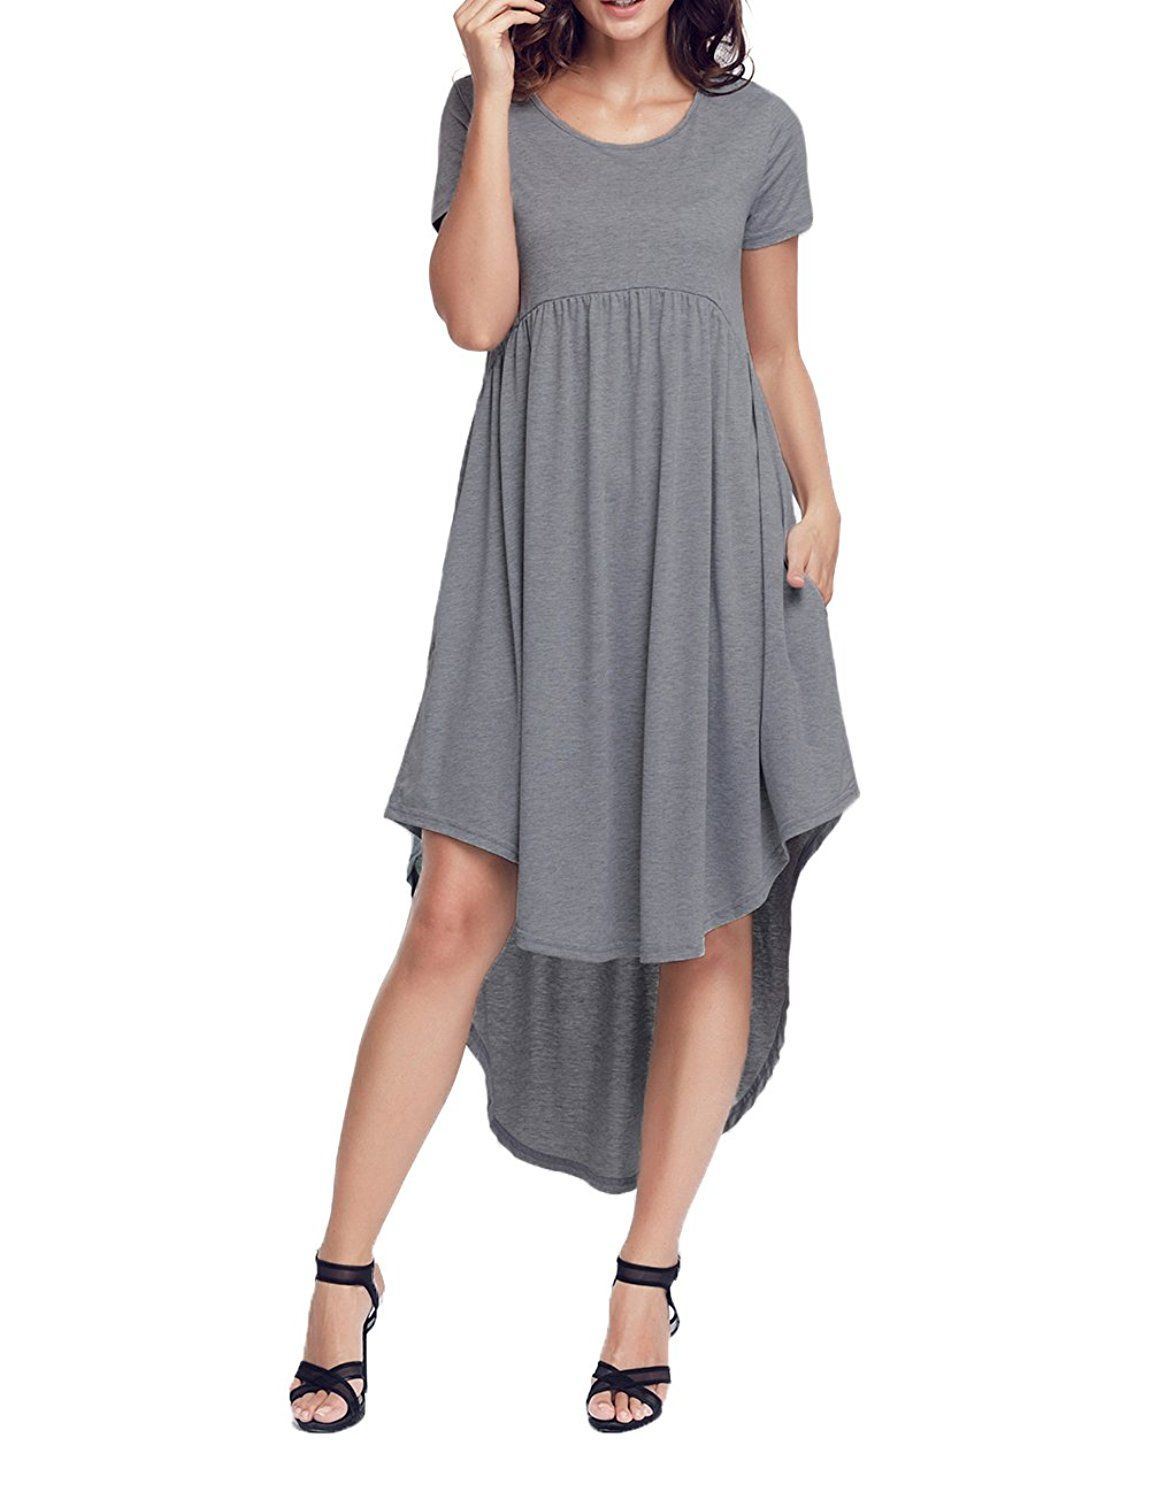 Fiyote women short sleeve high low draped swing loose casual midi